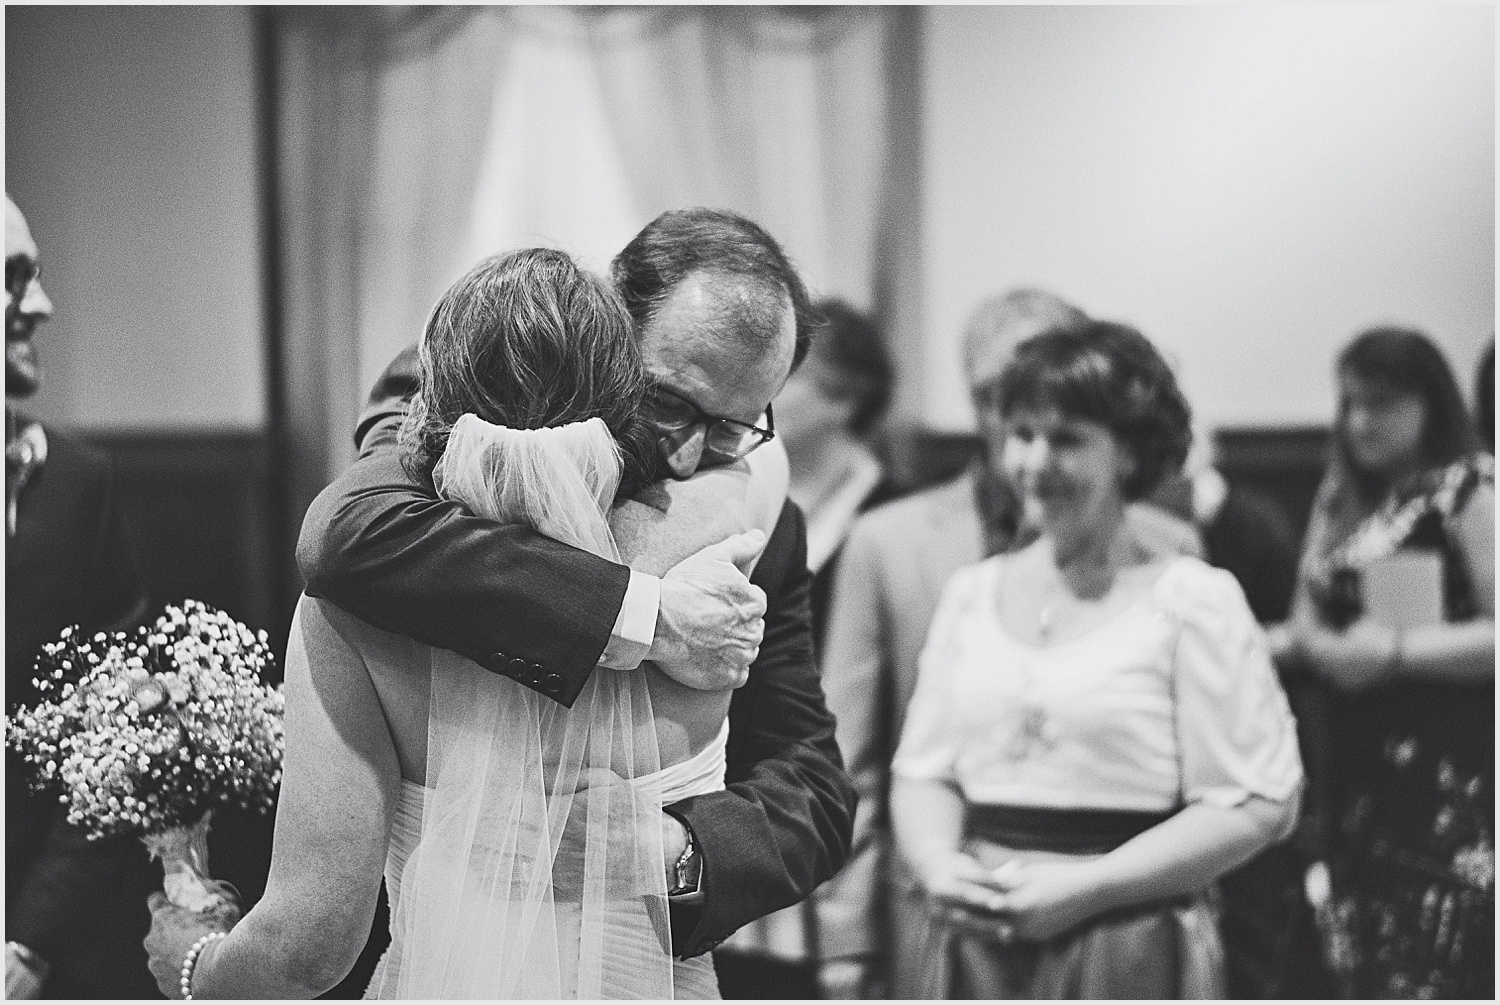 stpaul_wedding_lucas_botz_photography_022.jpg